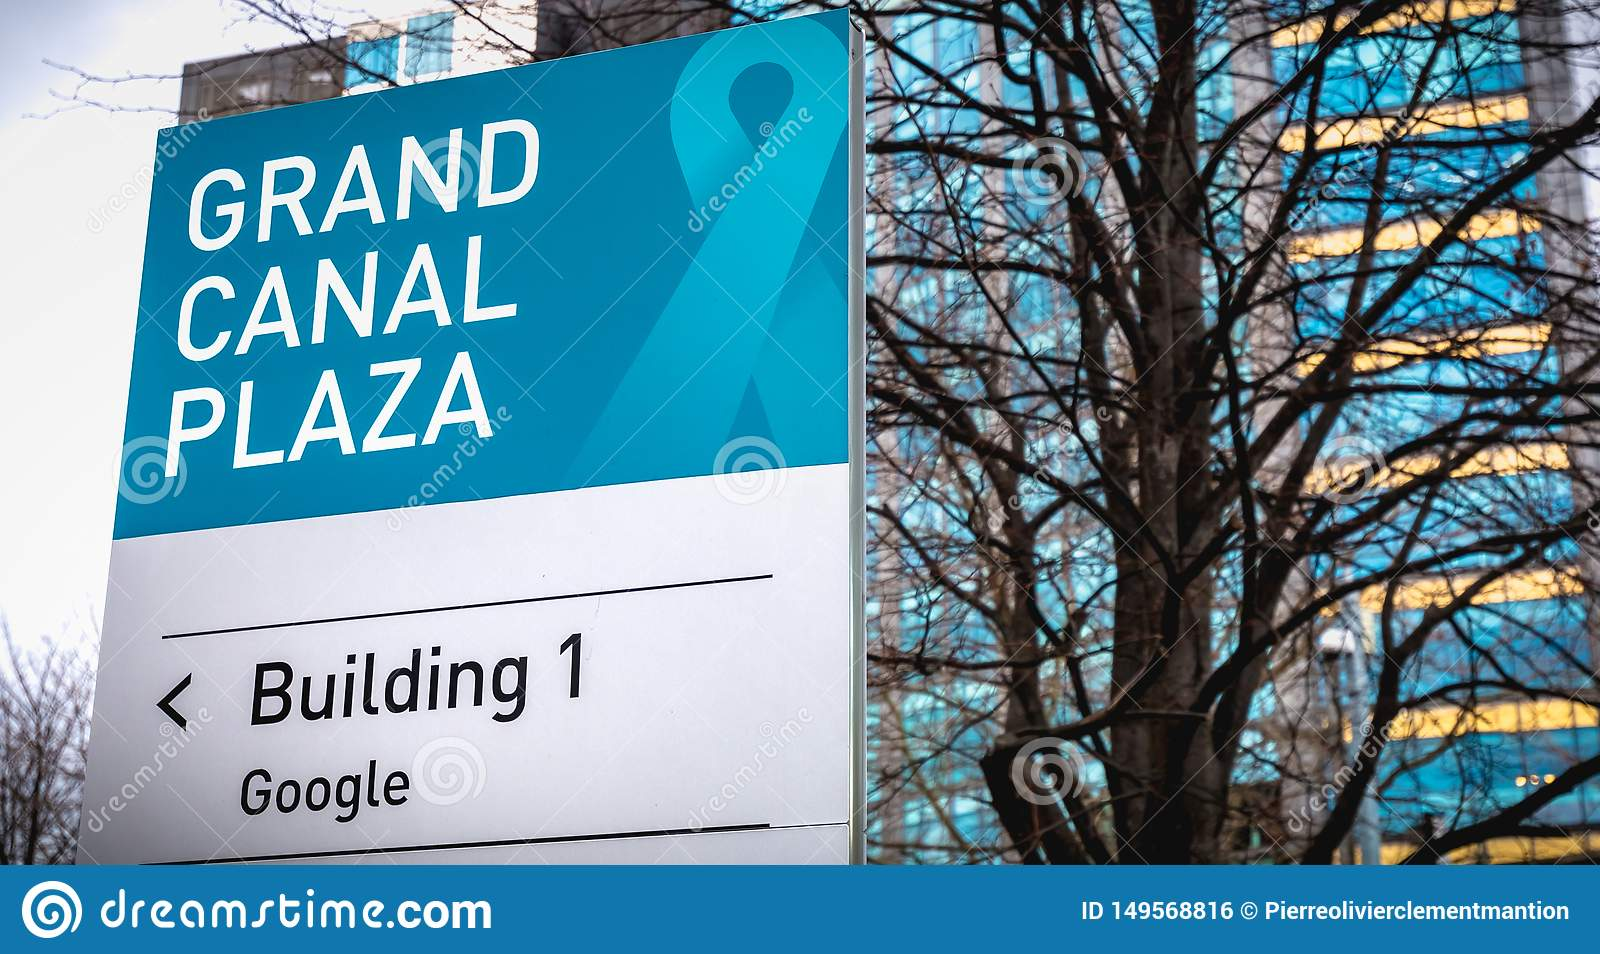 Grand Canal Plaza Building 1 Google sign in front of the Irish headquarters of international business google